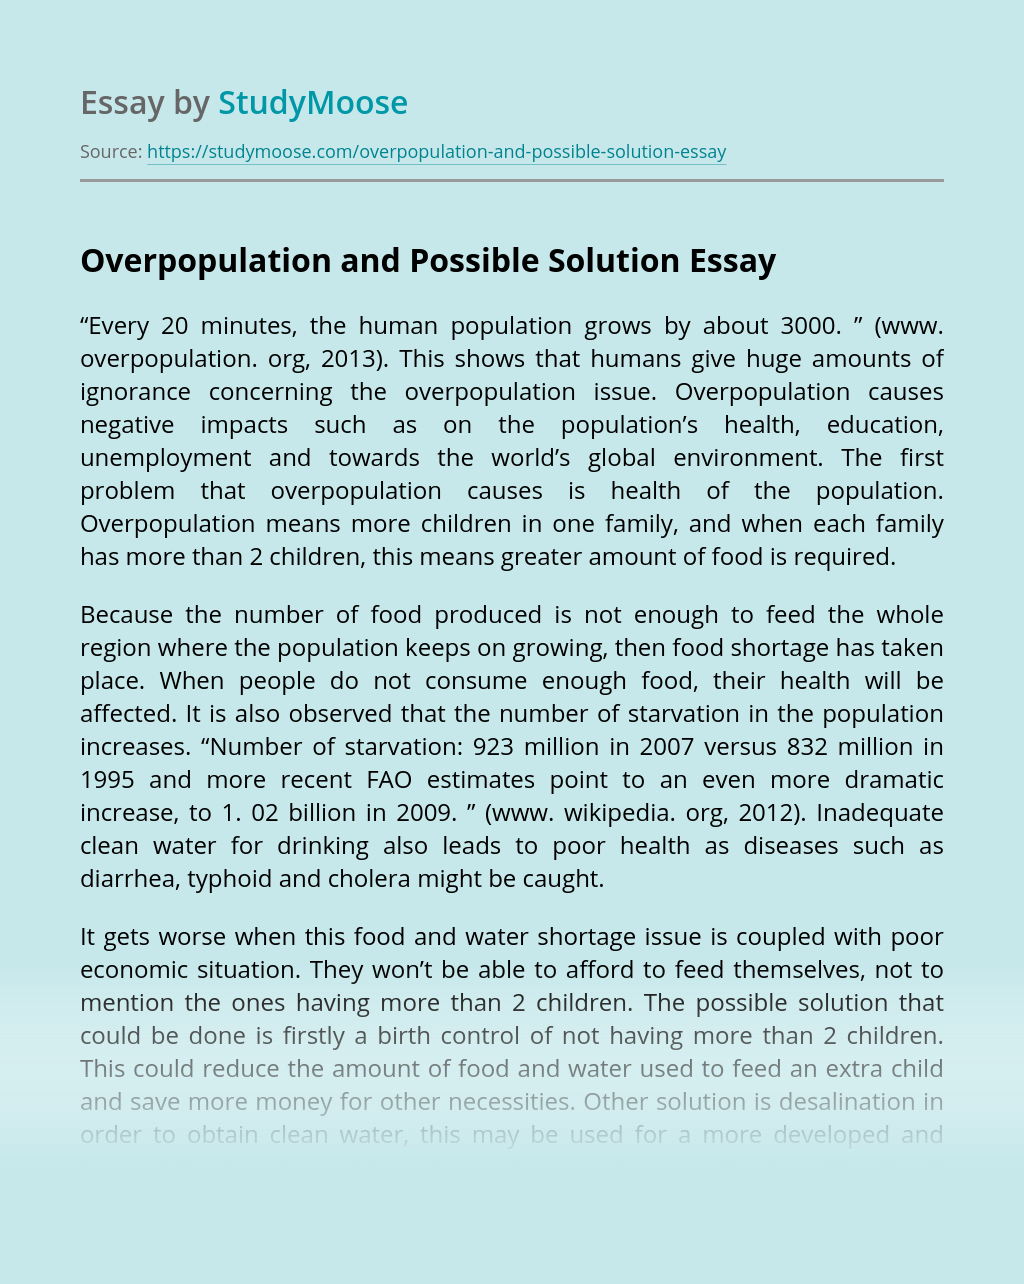 Overpopulation and Possible Solution